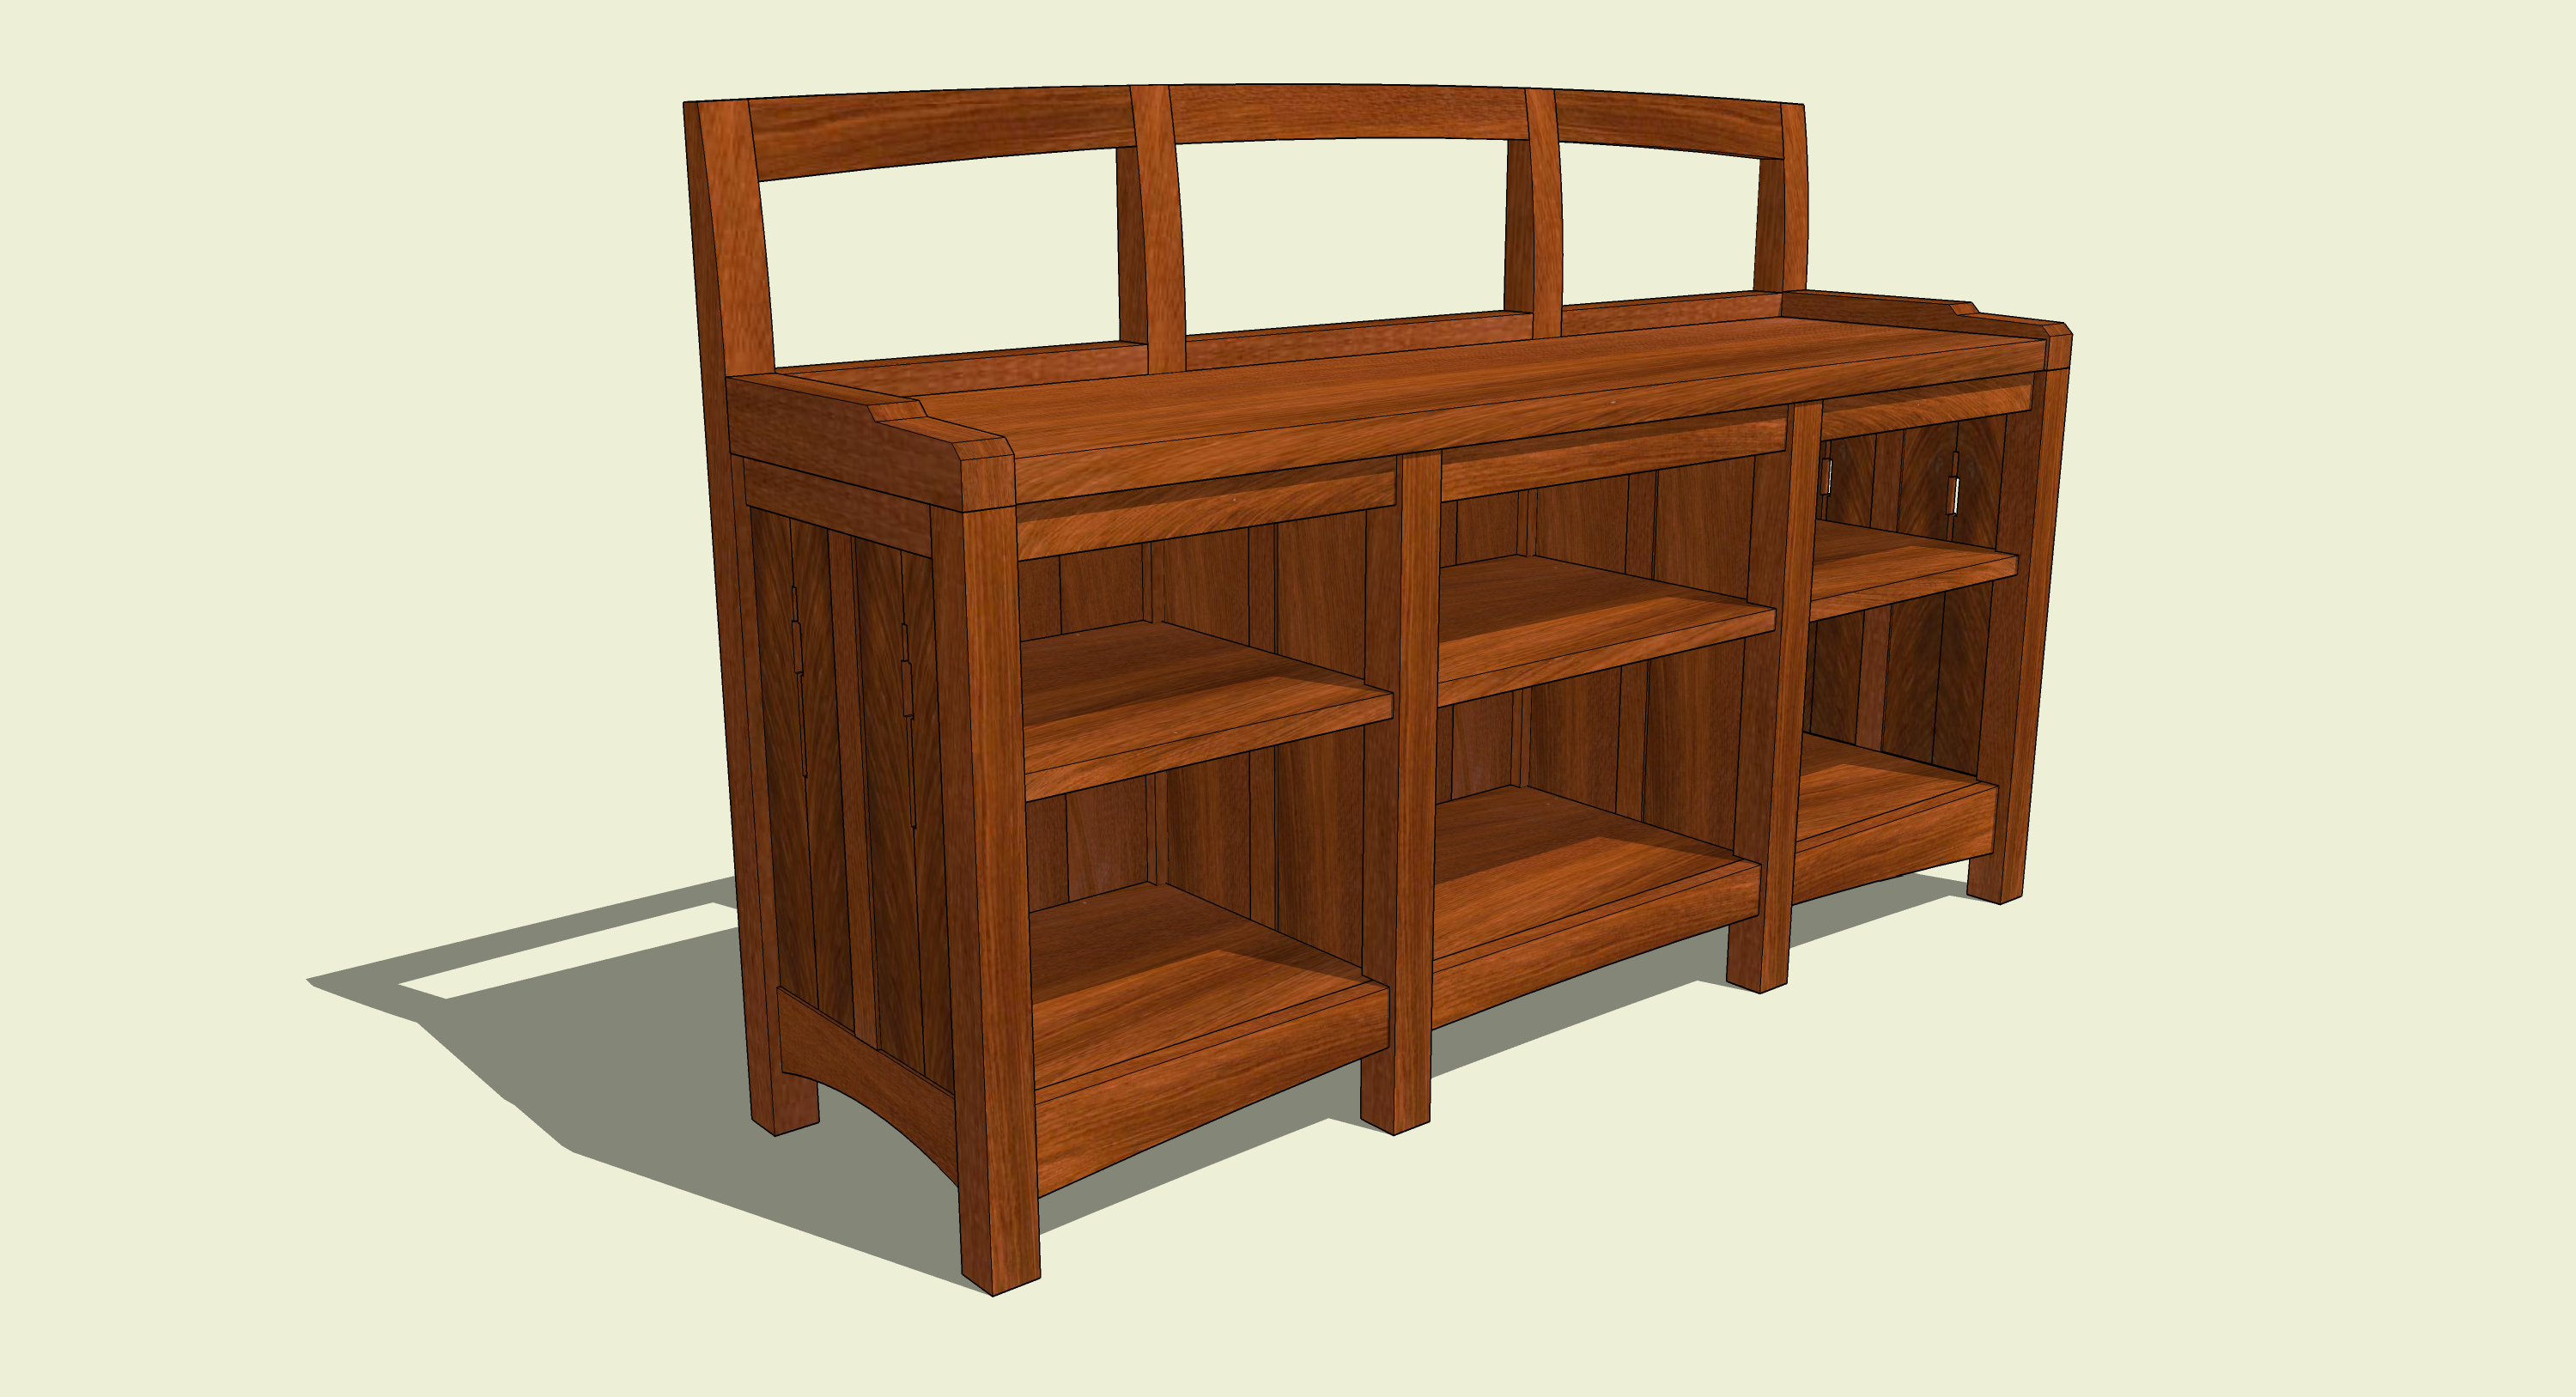 sketchup 8 woodworking